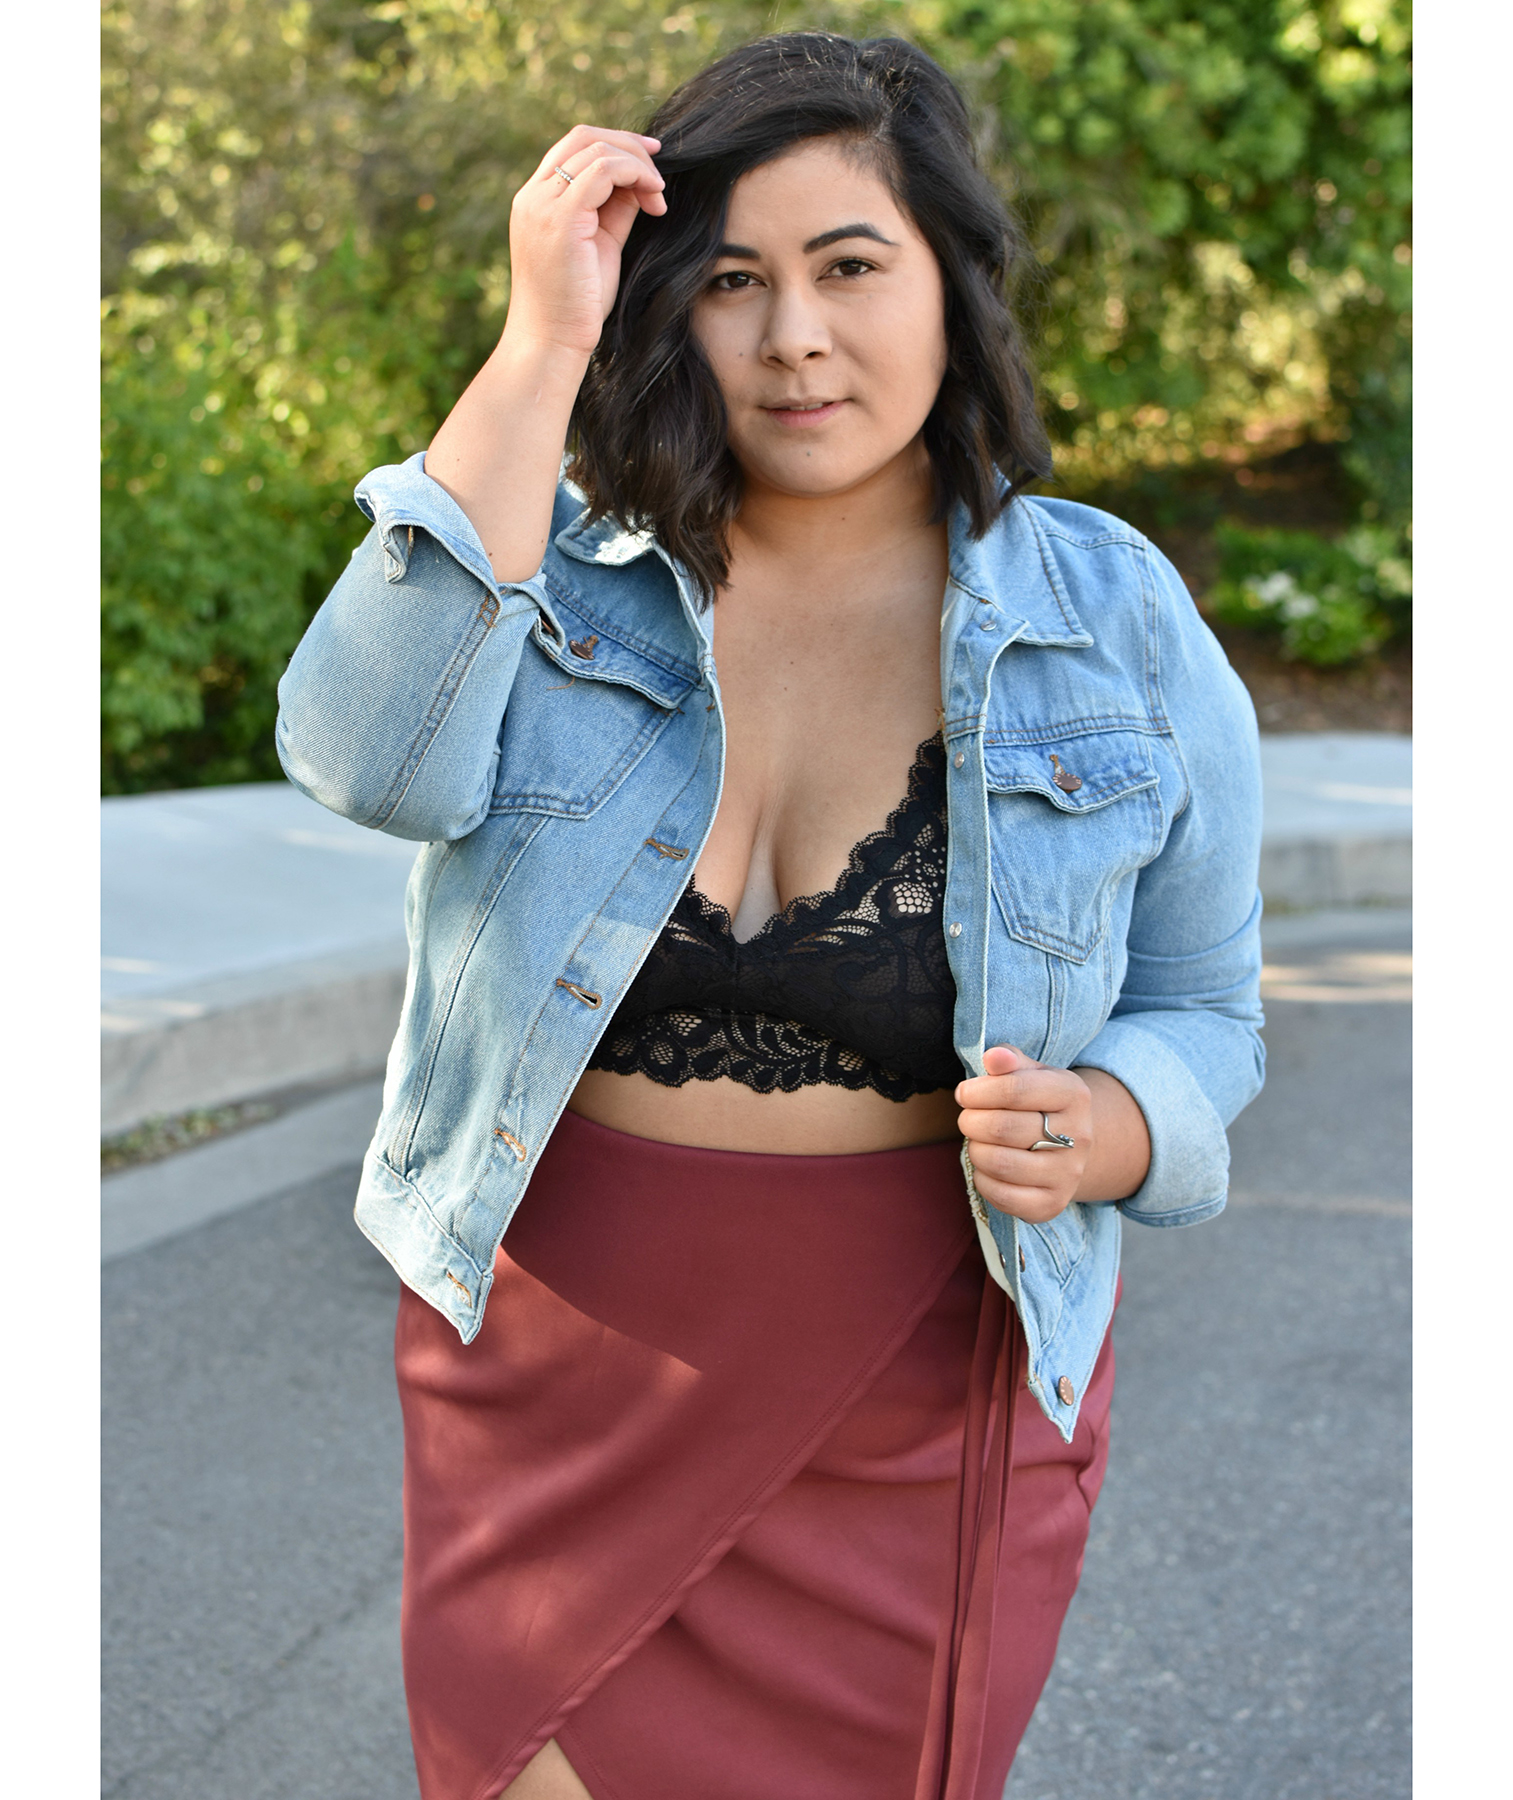 b5ab83ac1072b8 Tips on How to Wear a Bralette